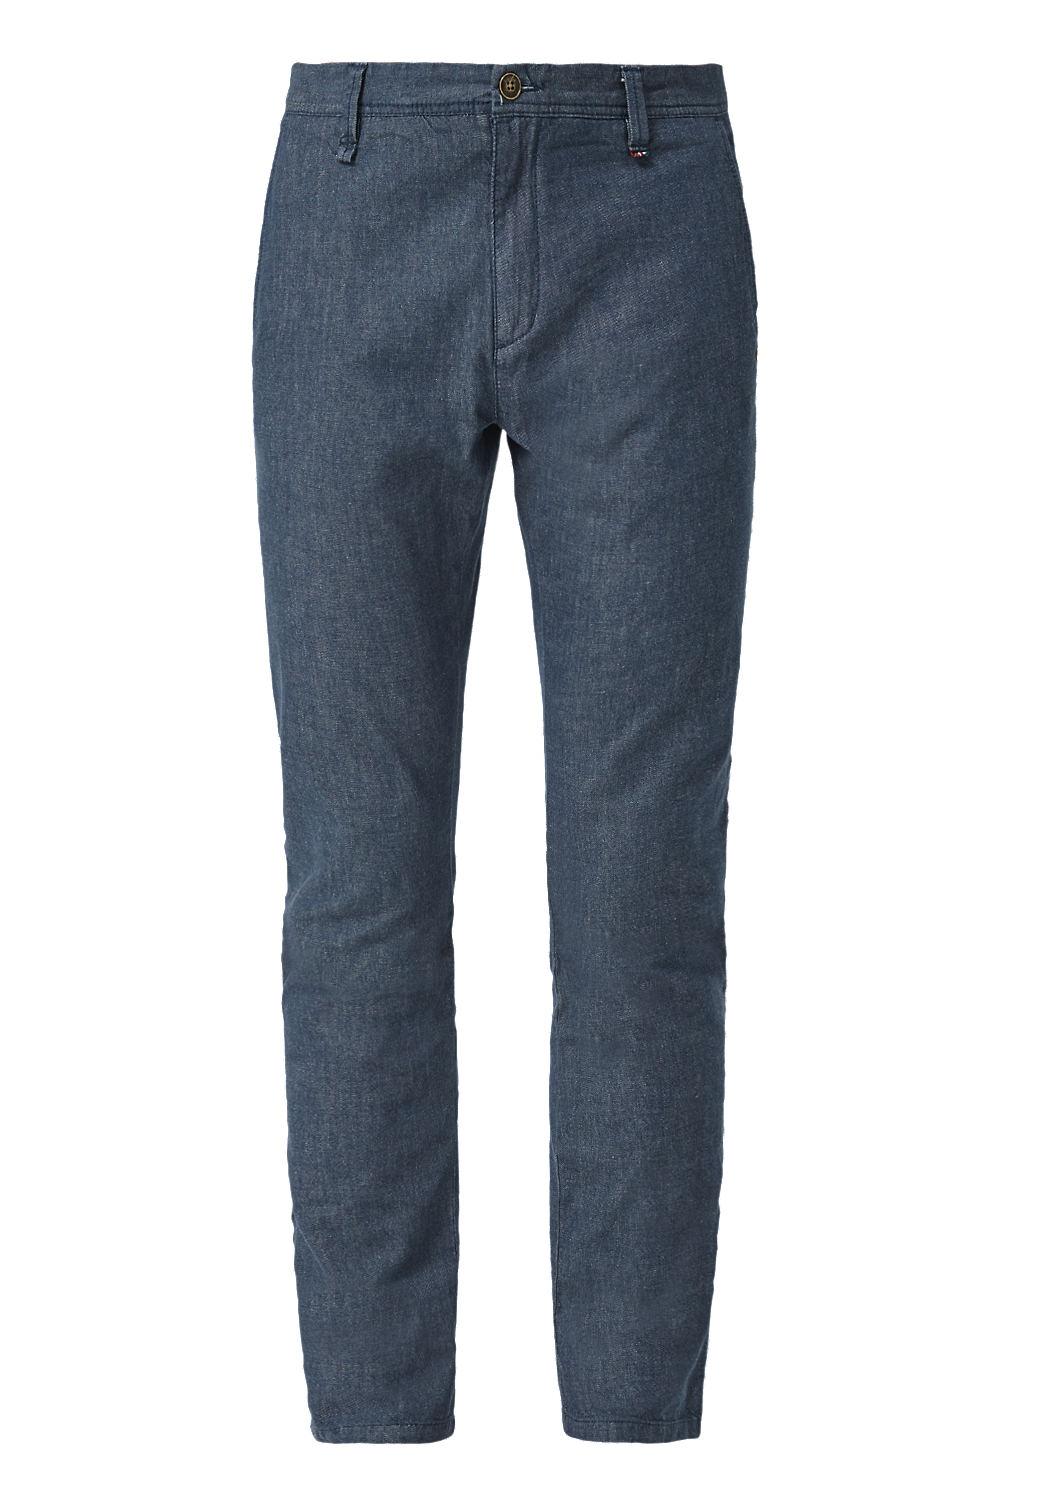 factory price exclusive shoes reasonably priced Buy Sneck Slim: twill chinos   s.Oliver shop